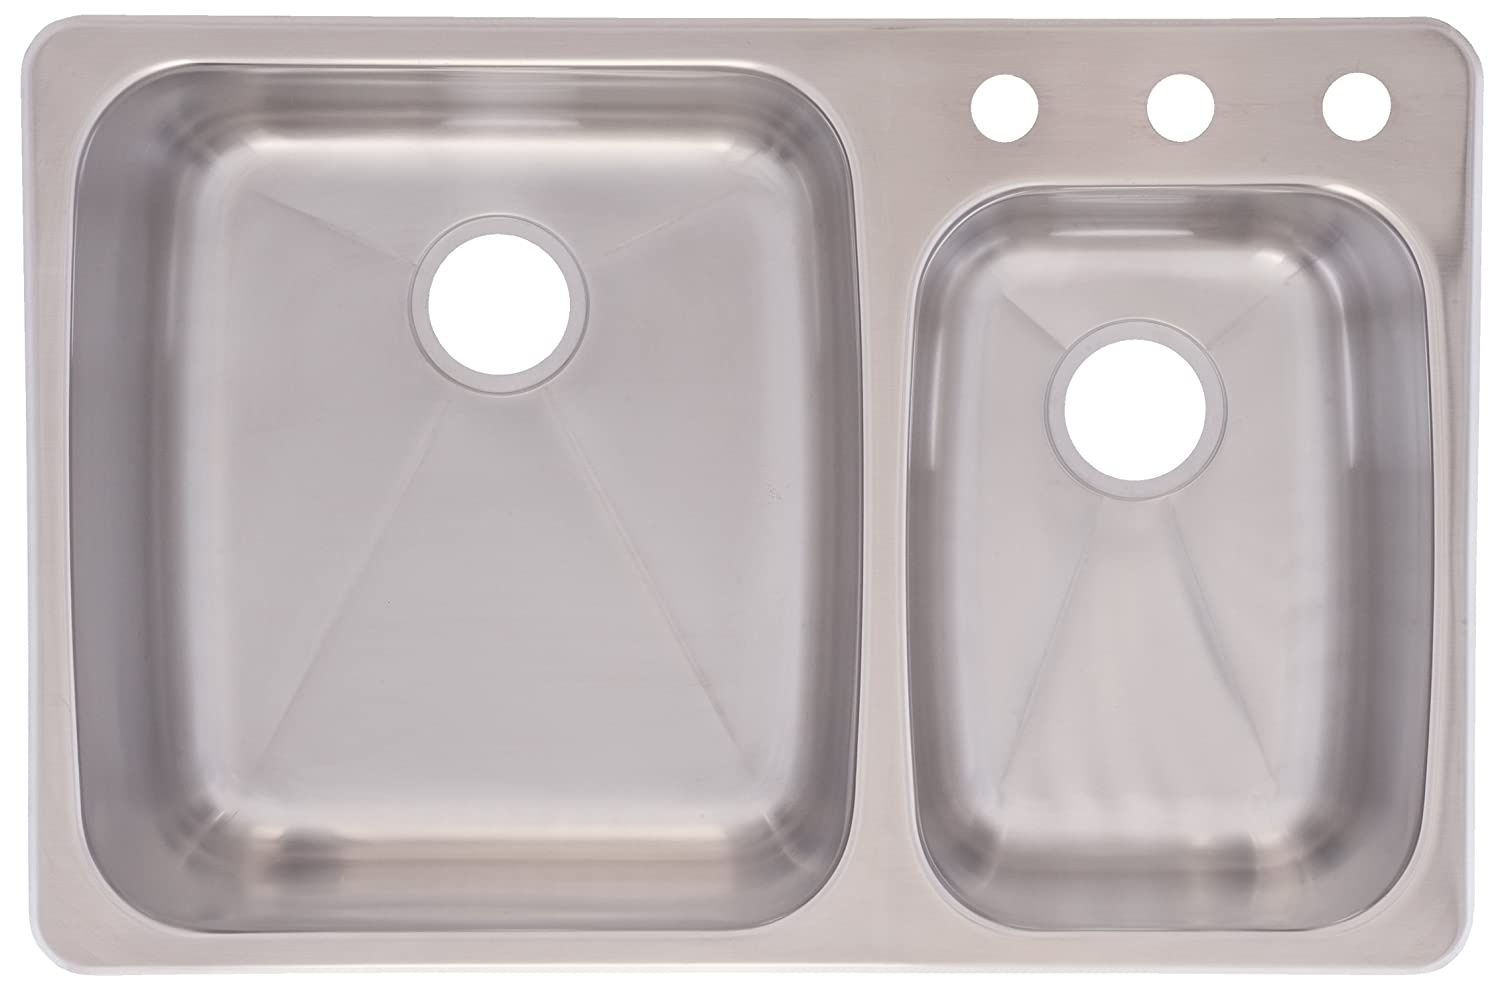 Delightful Franke C2233R/9 Stainless Steel 33 1/4x 22in. Dualmount Double Bowl Sink    Dualmount Double Bowl Kitchen Sink   Amazon.com